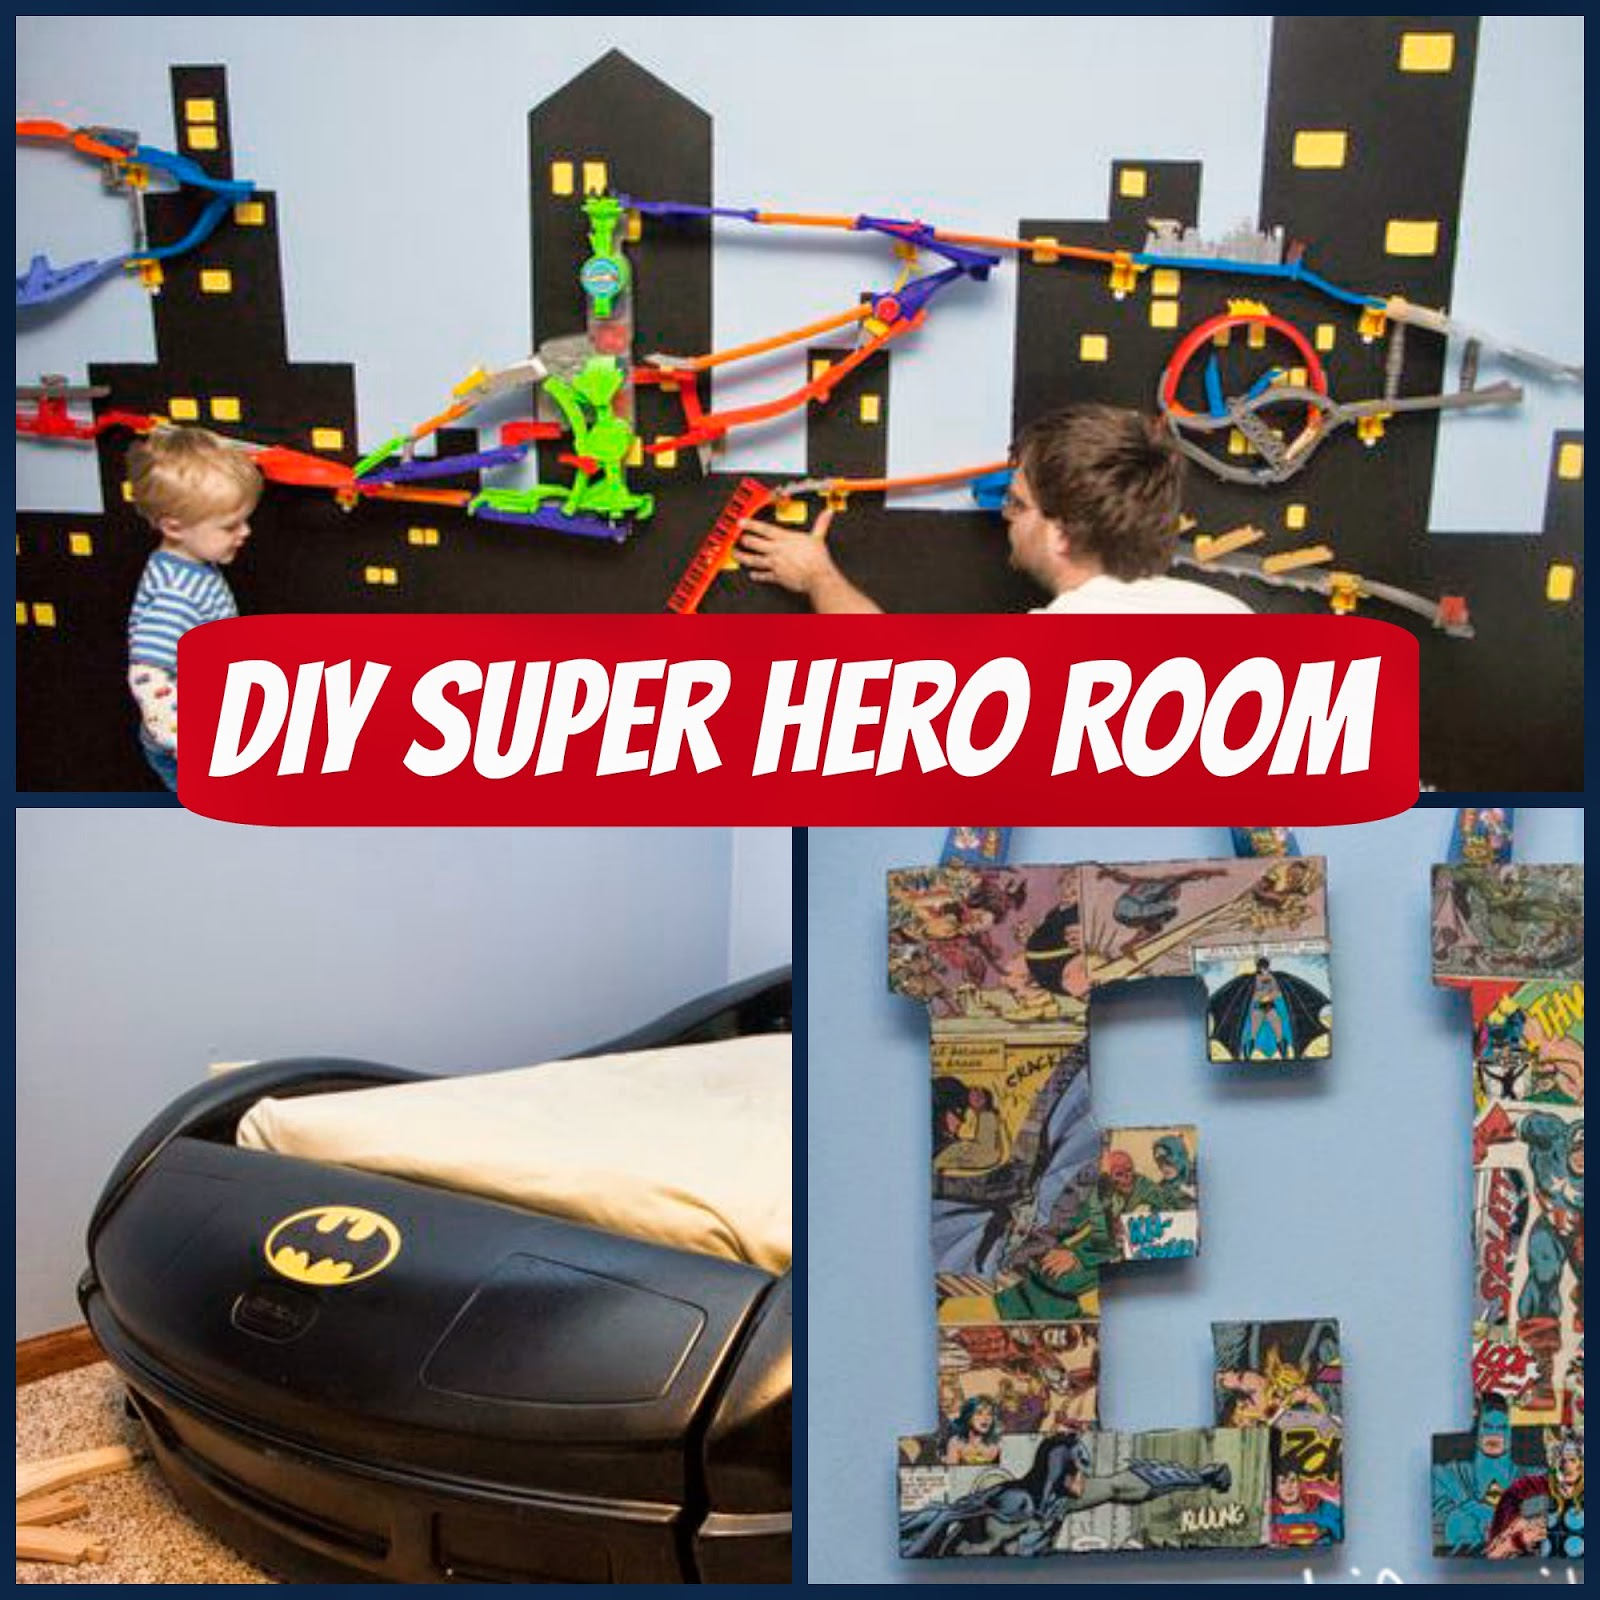 bedrooms unique accessories decorations kids marvel superhero super about best diy hero fatherhood avengers decor furniture busydade colors theme fresh curtains decals stickers on room boys cute uncensored bedroom little ideas lights in boy picture